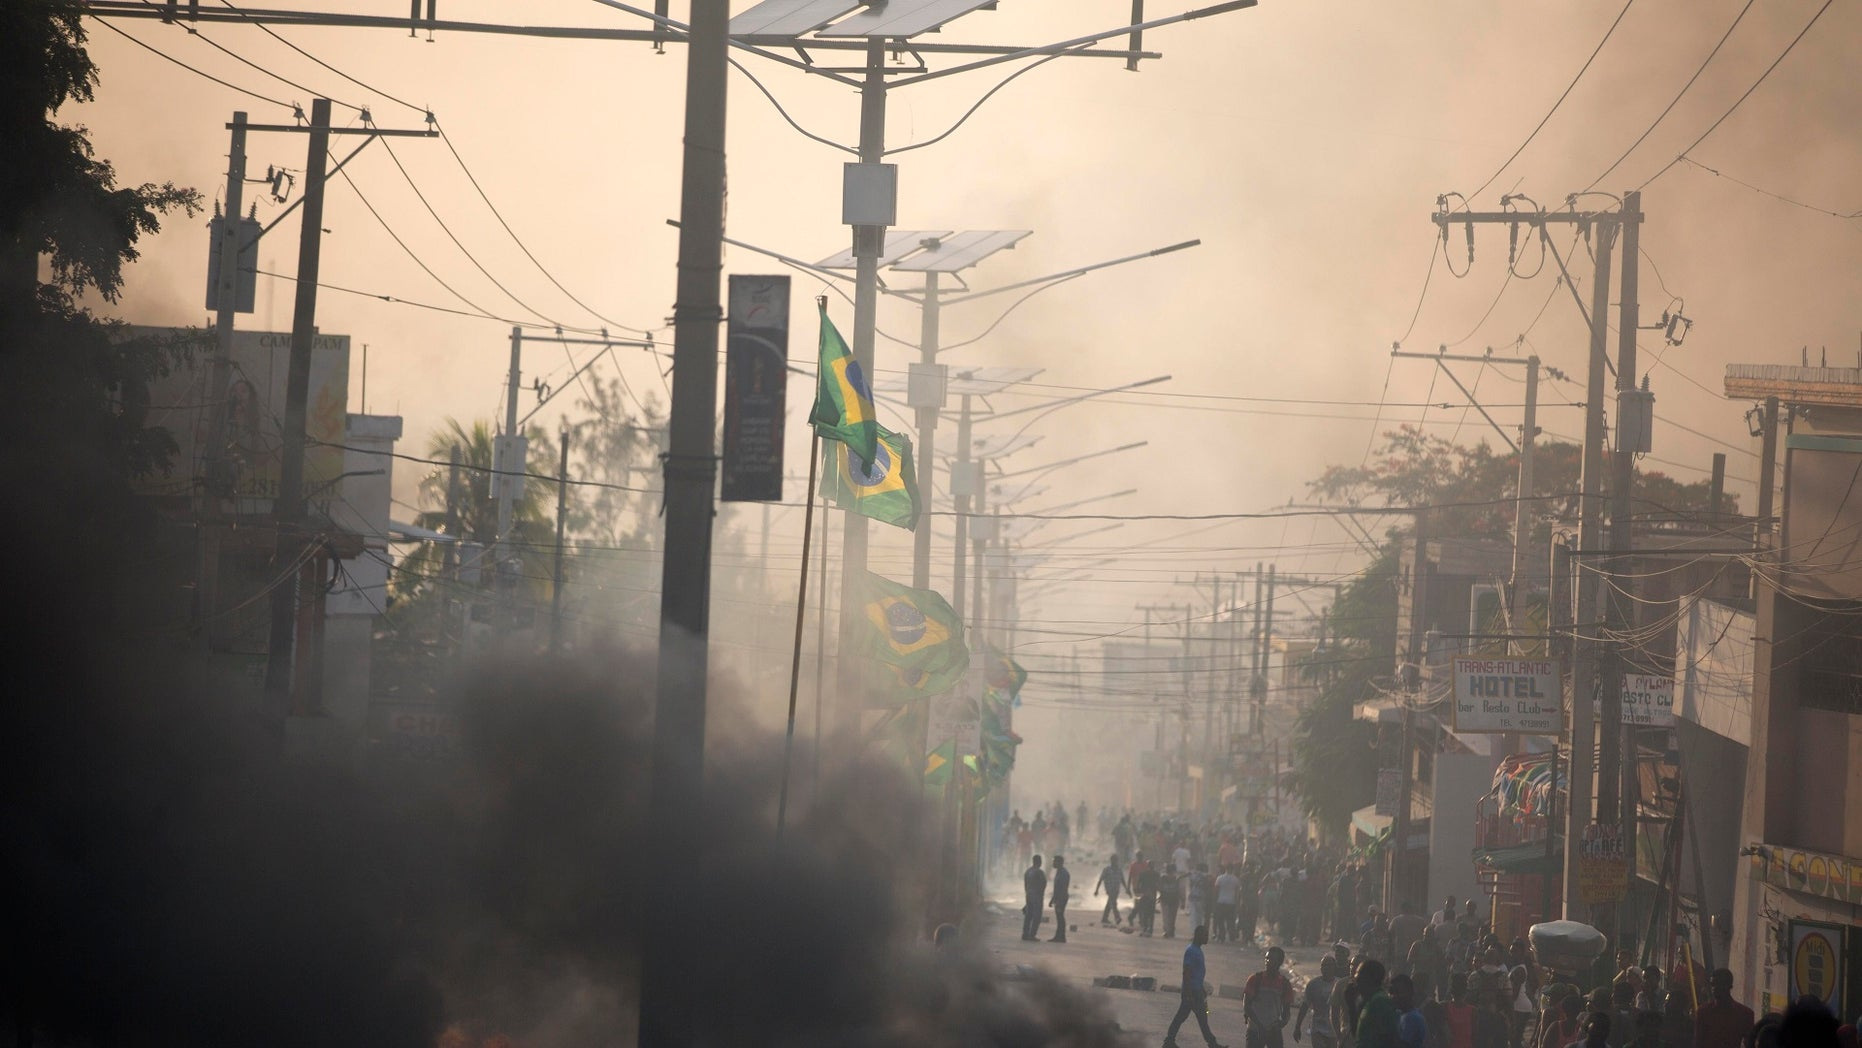 Major protests erupted Friday in Haiti as the government announced a sharp increase in gasoline prices, with demonstrators using burning tires and barricades to block major streets across the capital and in the northern city of Cap-Haitien.